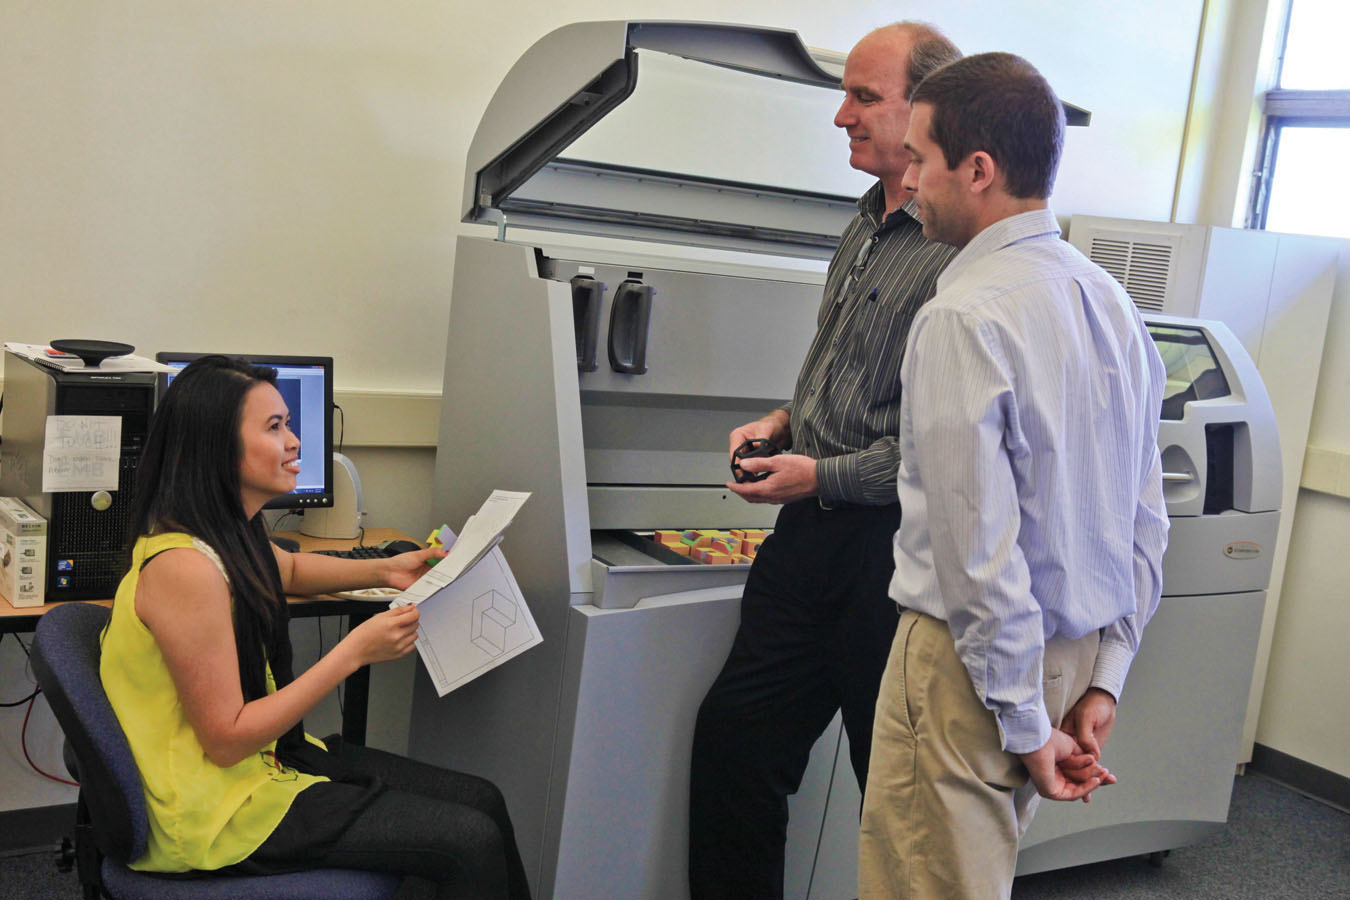 """Sophomore Huong """"Ivy"""" Nguyen, who plans to use the 3-D printer to make platforms for chemical instrumentation, talks with bioengineering and physics lecturer Bob Rumer. Her adviser Grady Hanrahan (r) is the John Stauffer Endowed Professor of Analytical Chemistry and co-director of the Hugh and Hazel Darling Center for Applied Scientific Computing."""